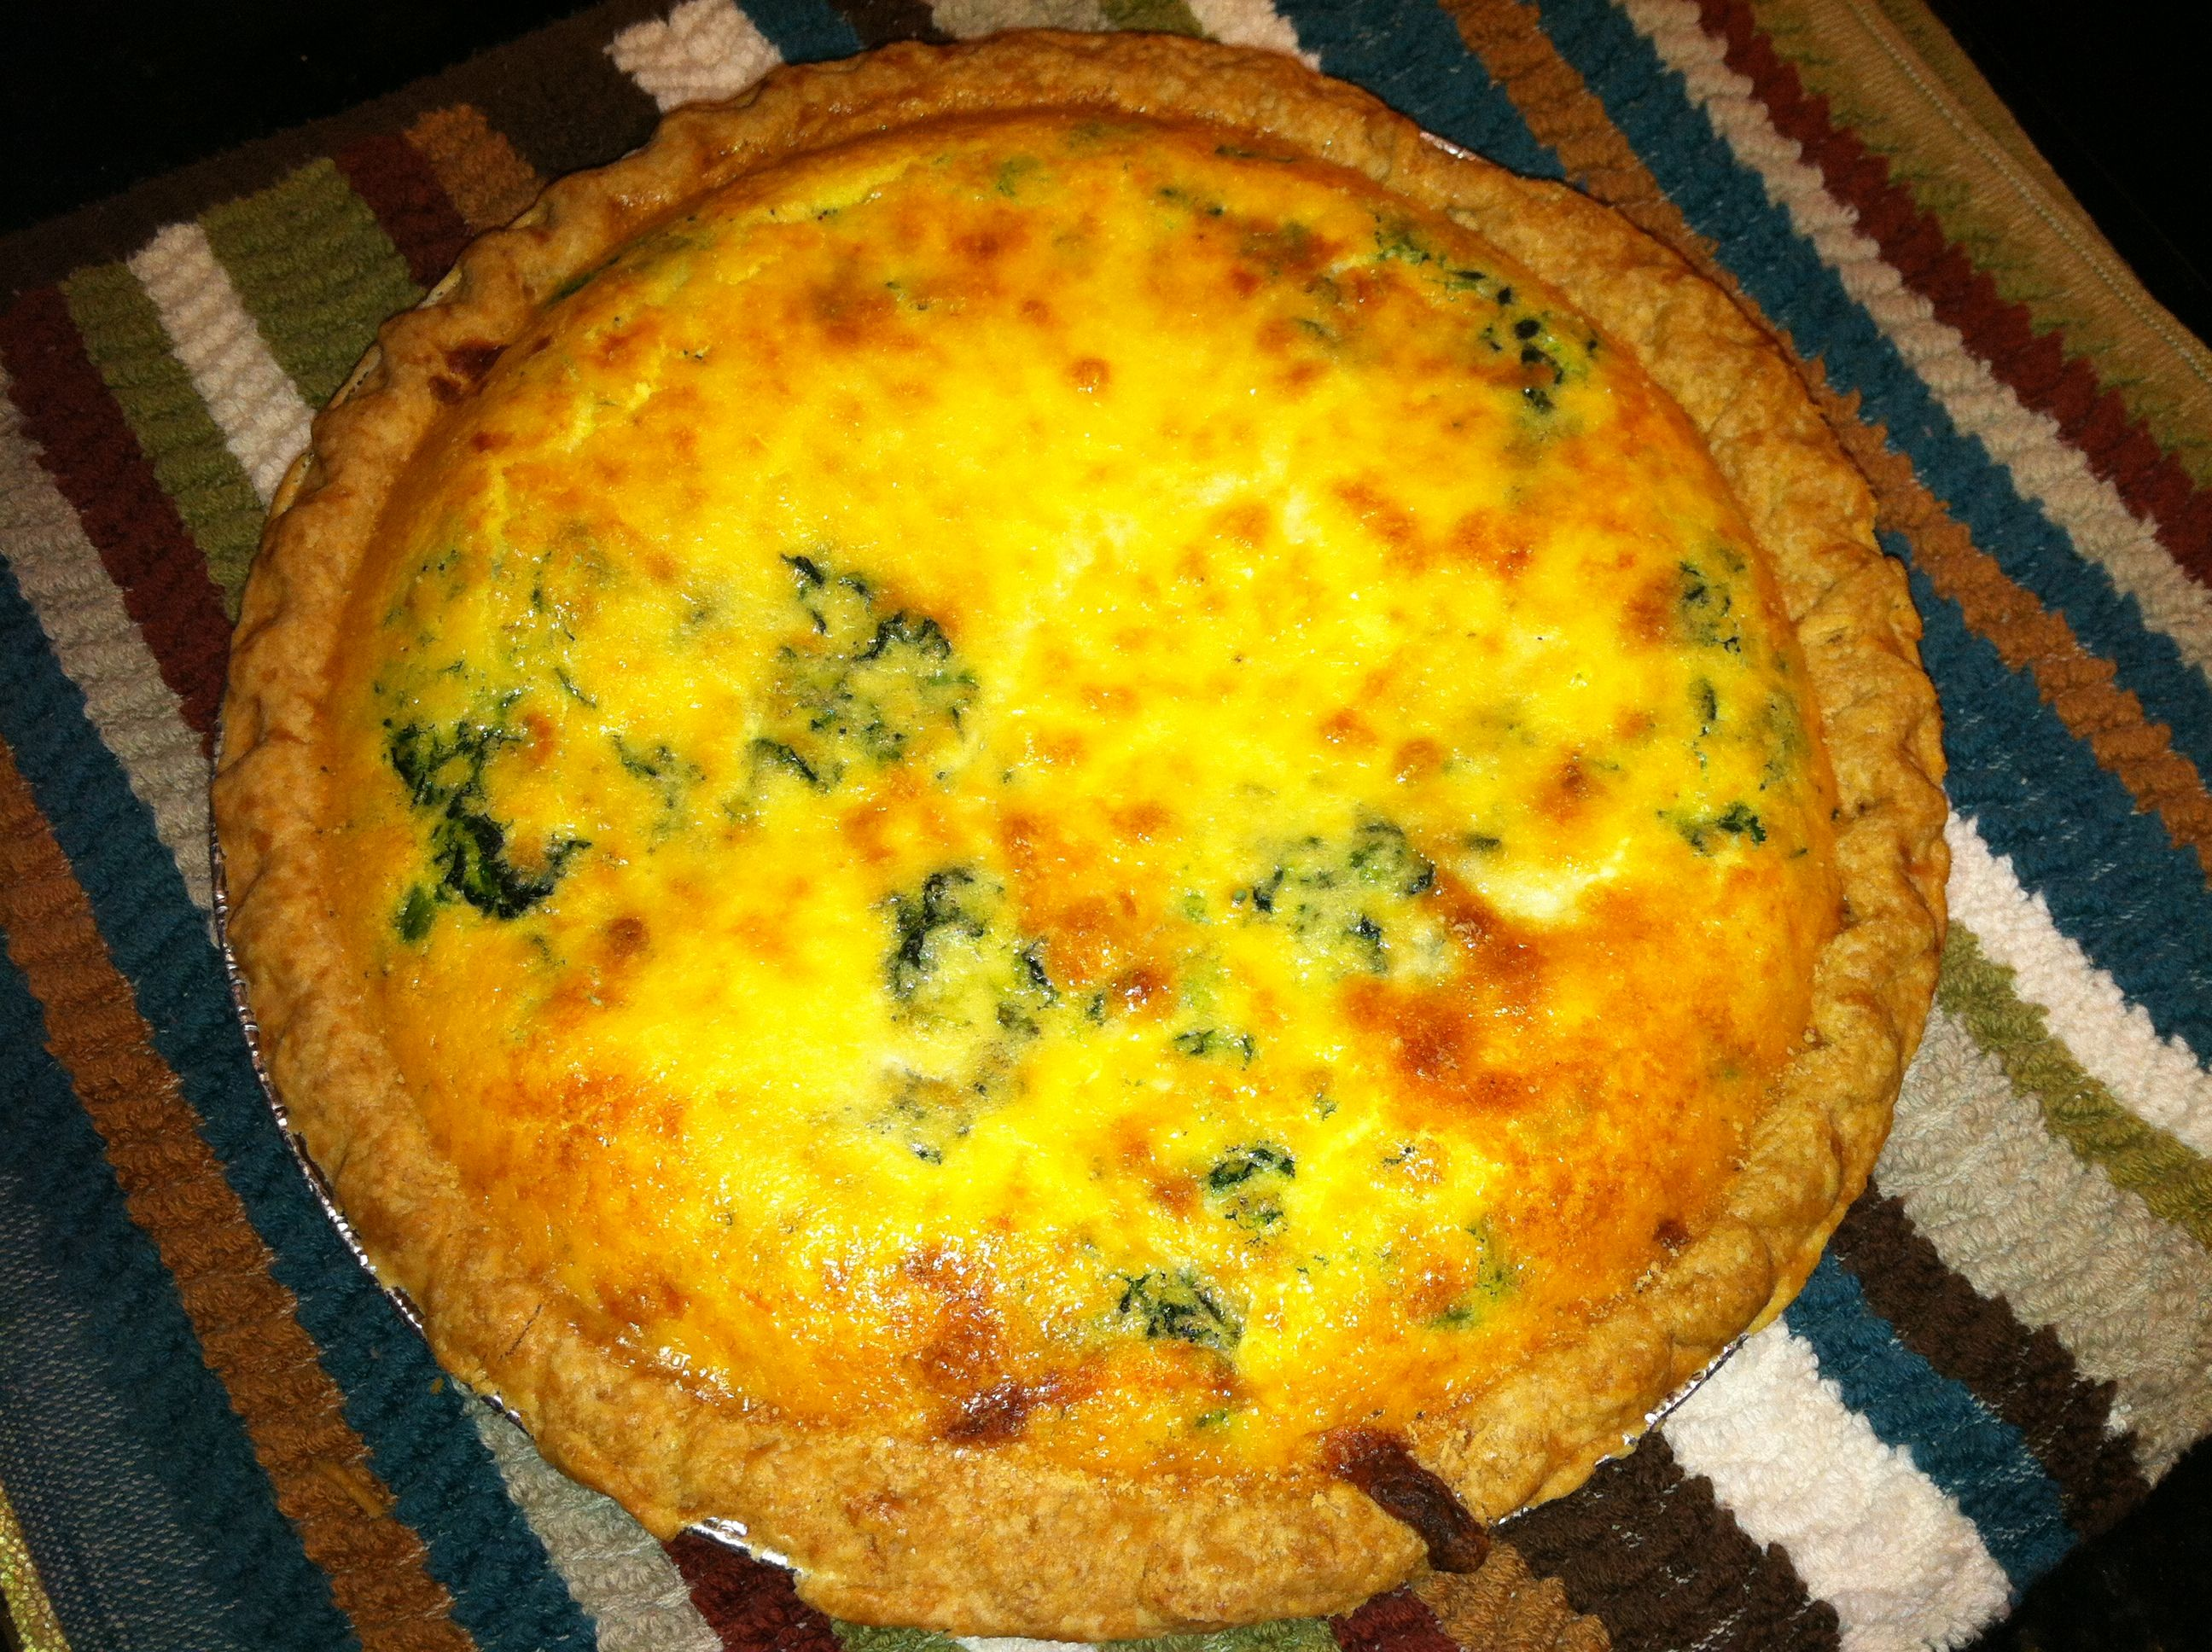 Easy 7 Min Prep Quiche 30 Min Bake Only A Few Ingredients It S Amaze 1 Pint Heavy Cream 1 Block Of Chopped Frozen Spinach Thaw With Images Food Frozen Pie Crust Eat